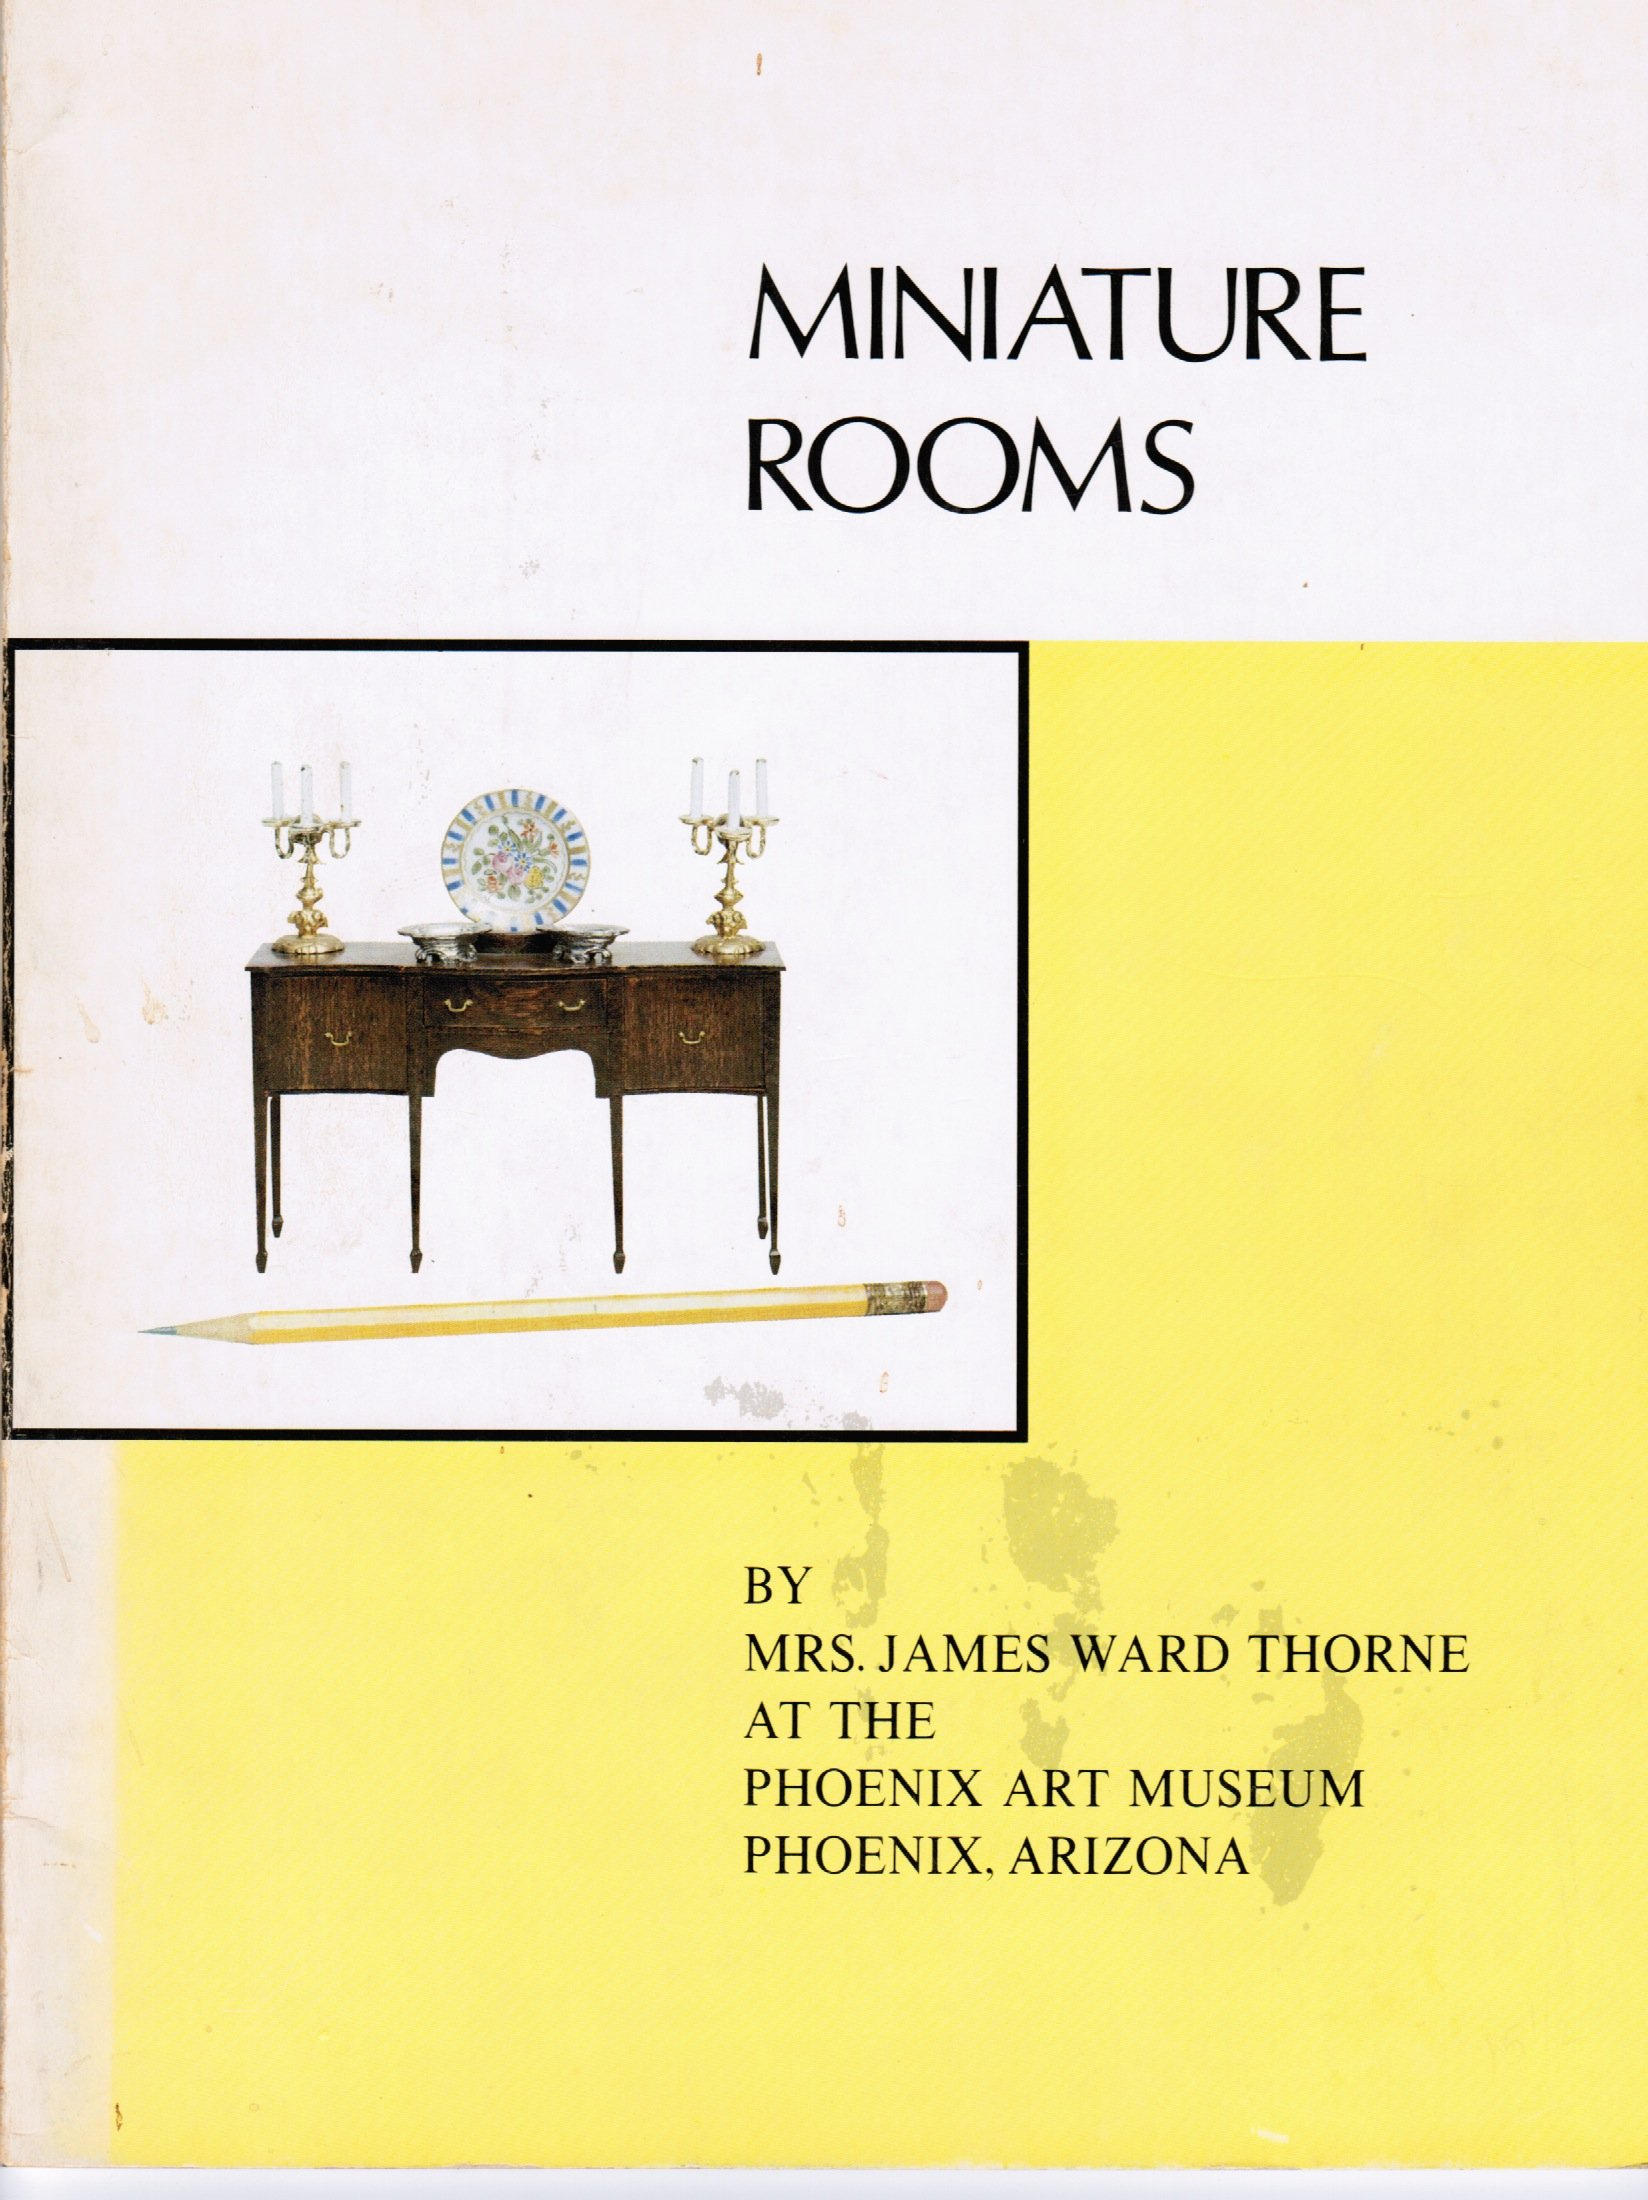 Miniature rooms: In the permanent collection of the Phoenix Art Museum, Mrs. James Ward Thorne